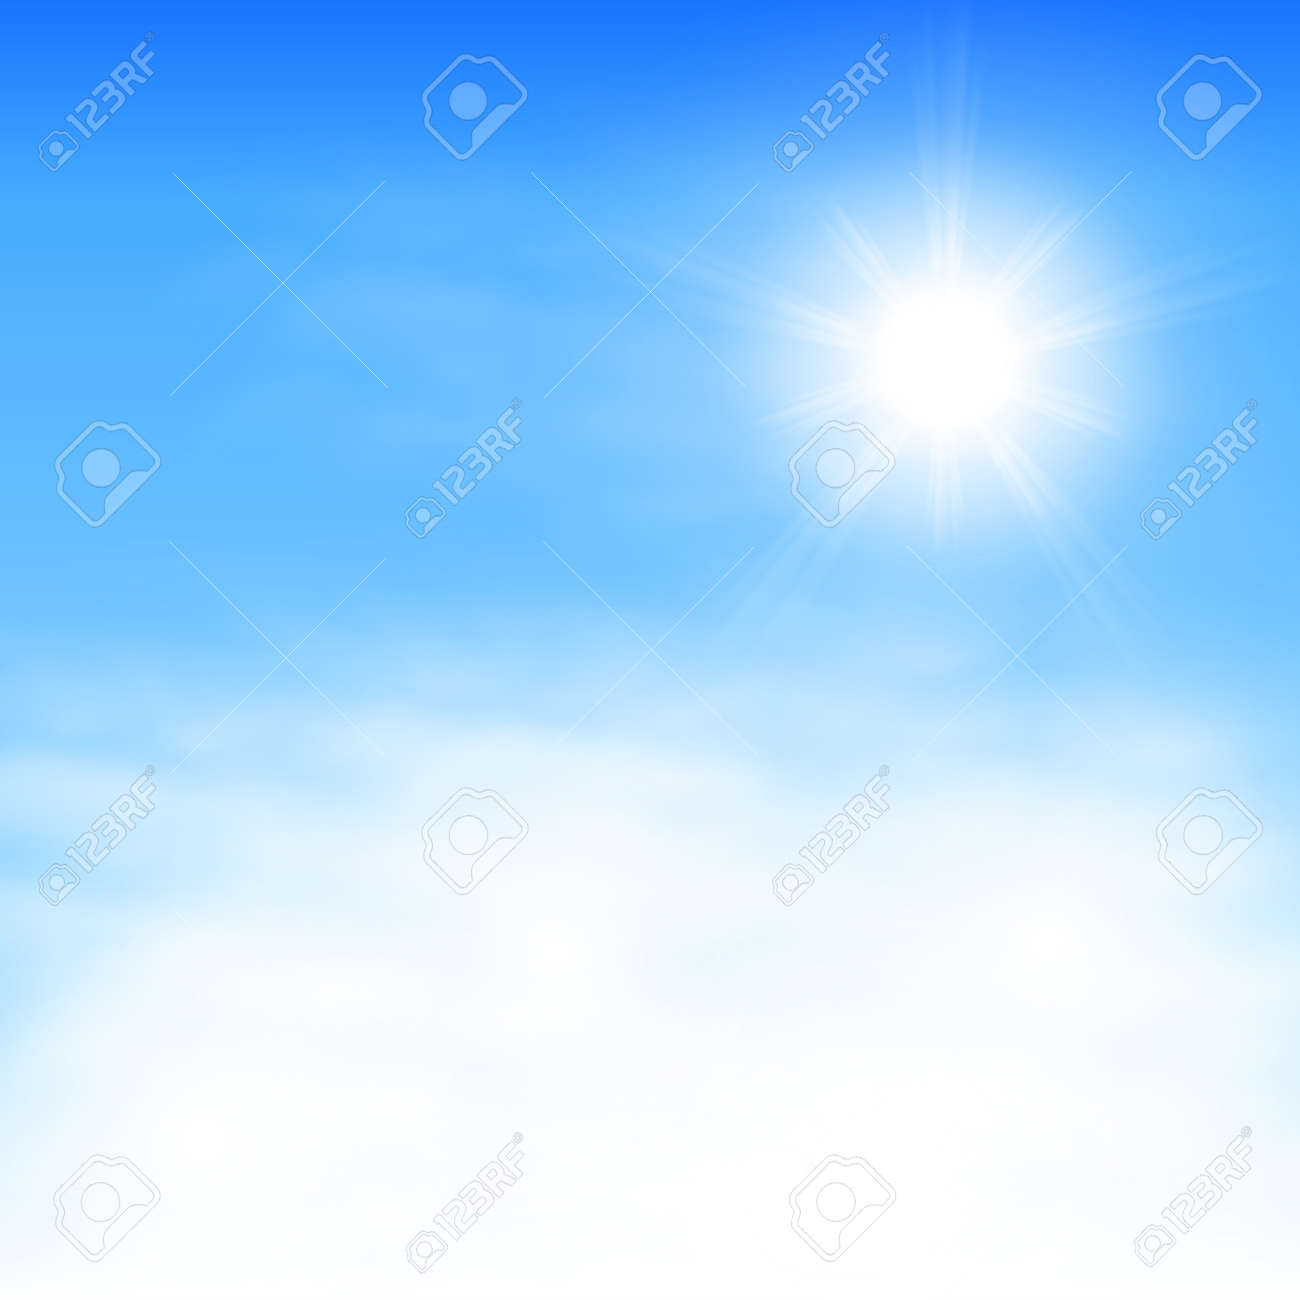 Sky with clouds and the sun. - 40569482